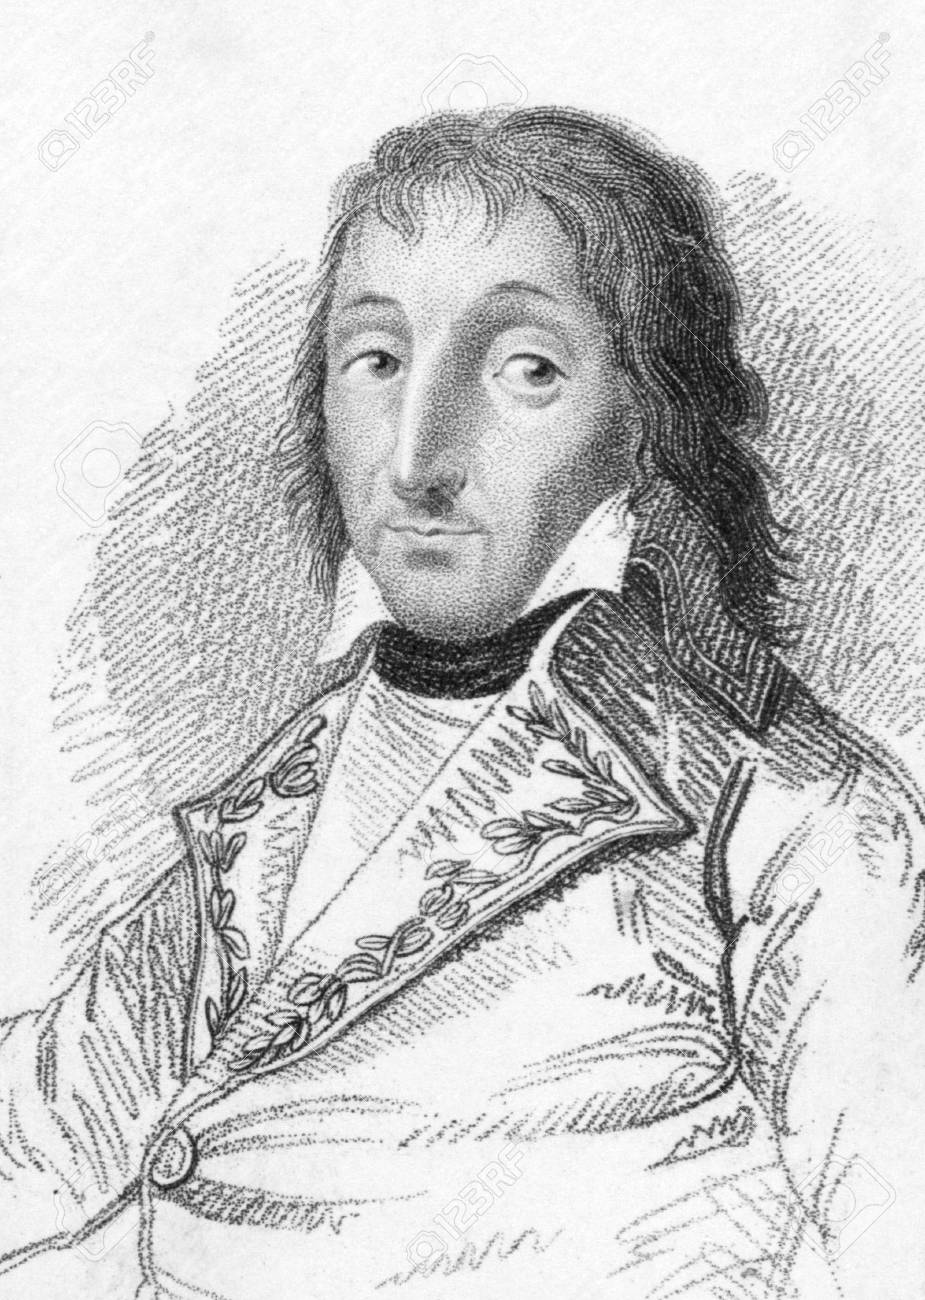 General Pierre Augereau (1757-1816) on egraving from the 1800s. French General. Ranked Marshall of France during the Revolutionary & Napoleonic Wars. Engraved by H.P. Cook and published in 1806 by M. Jones. Stock Photo - 8510781